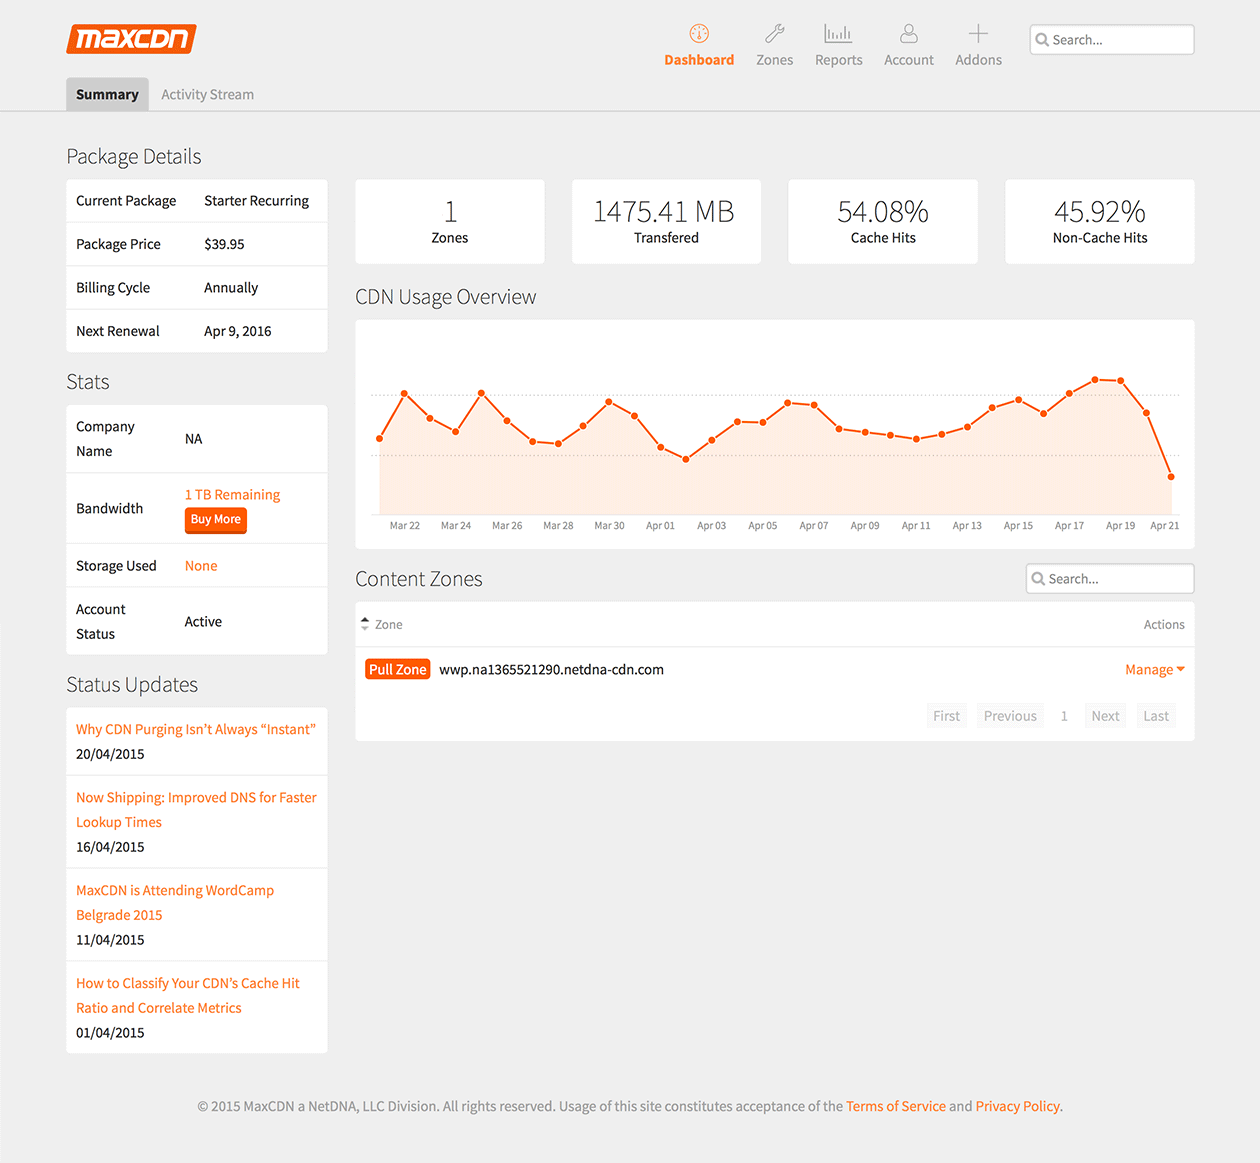 MaxCDN Dashboard - Screenshot